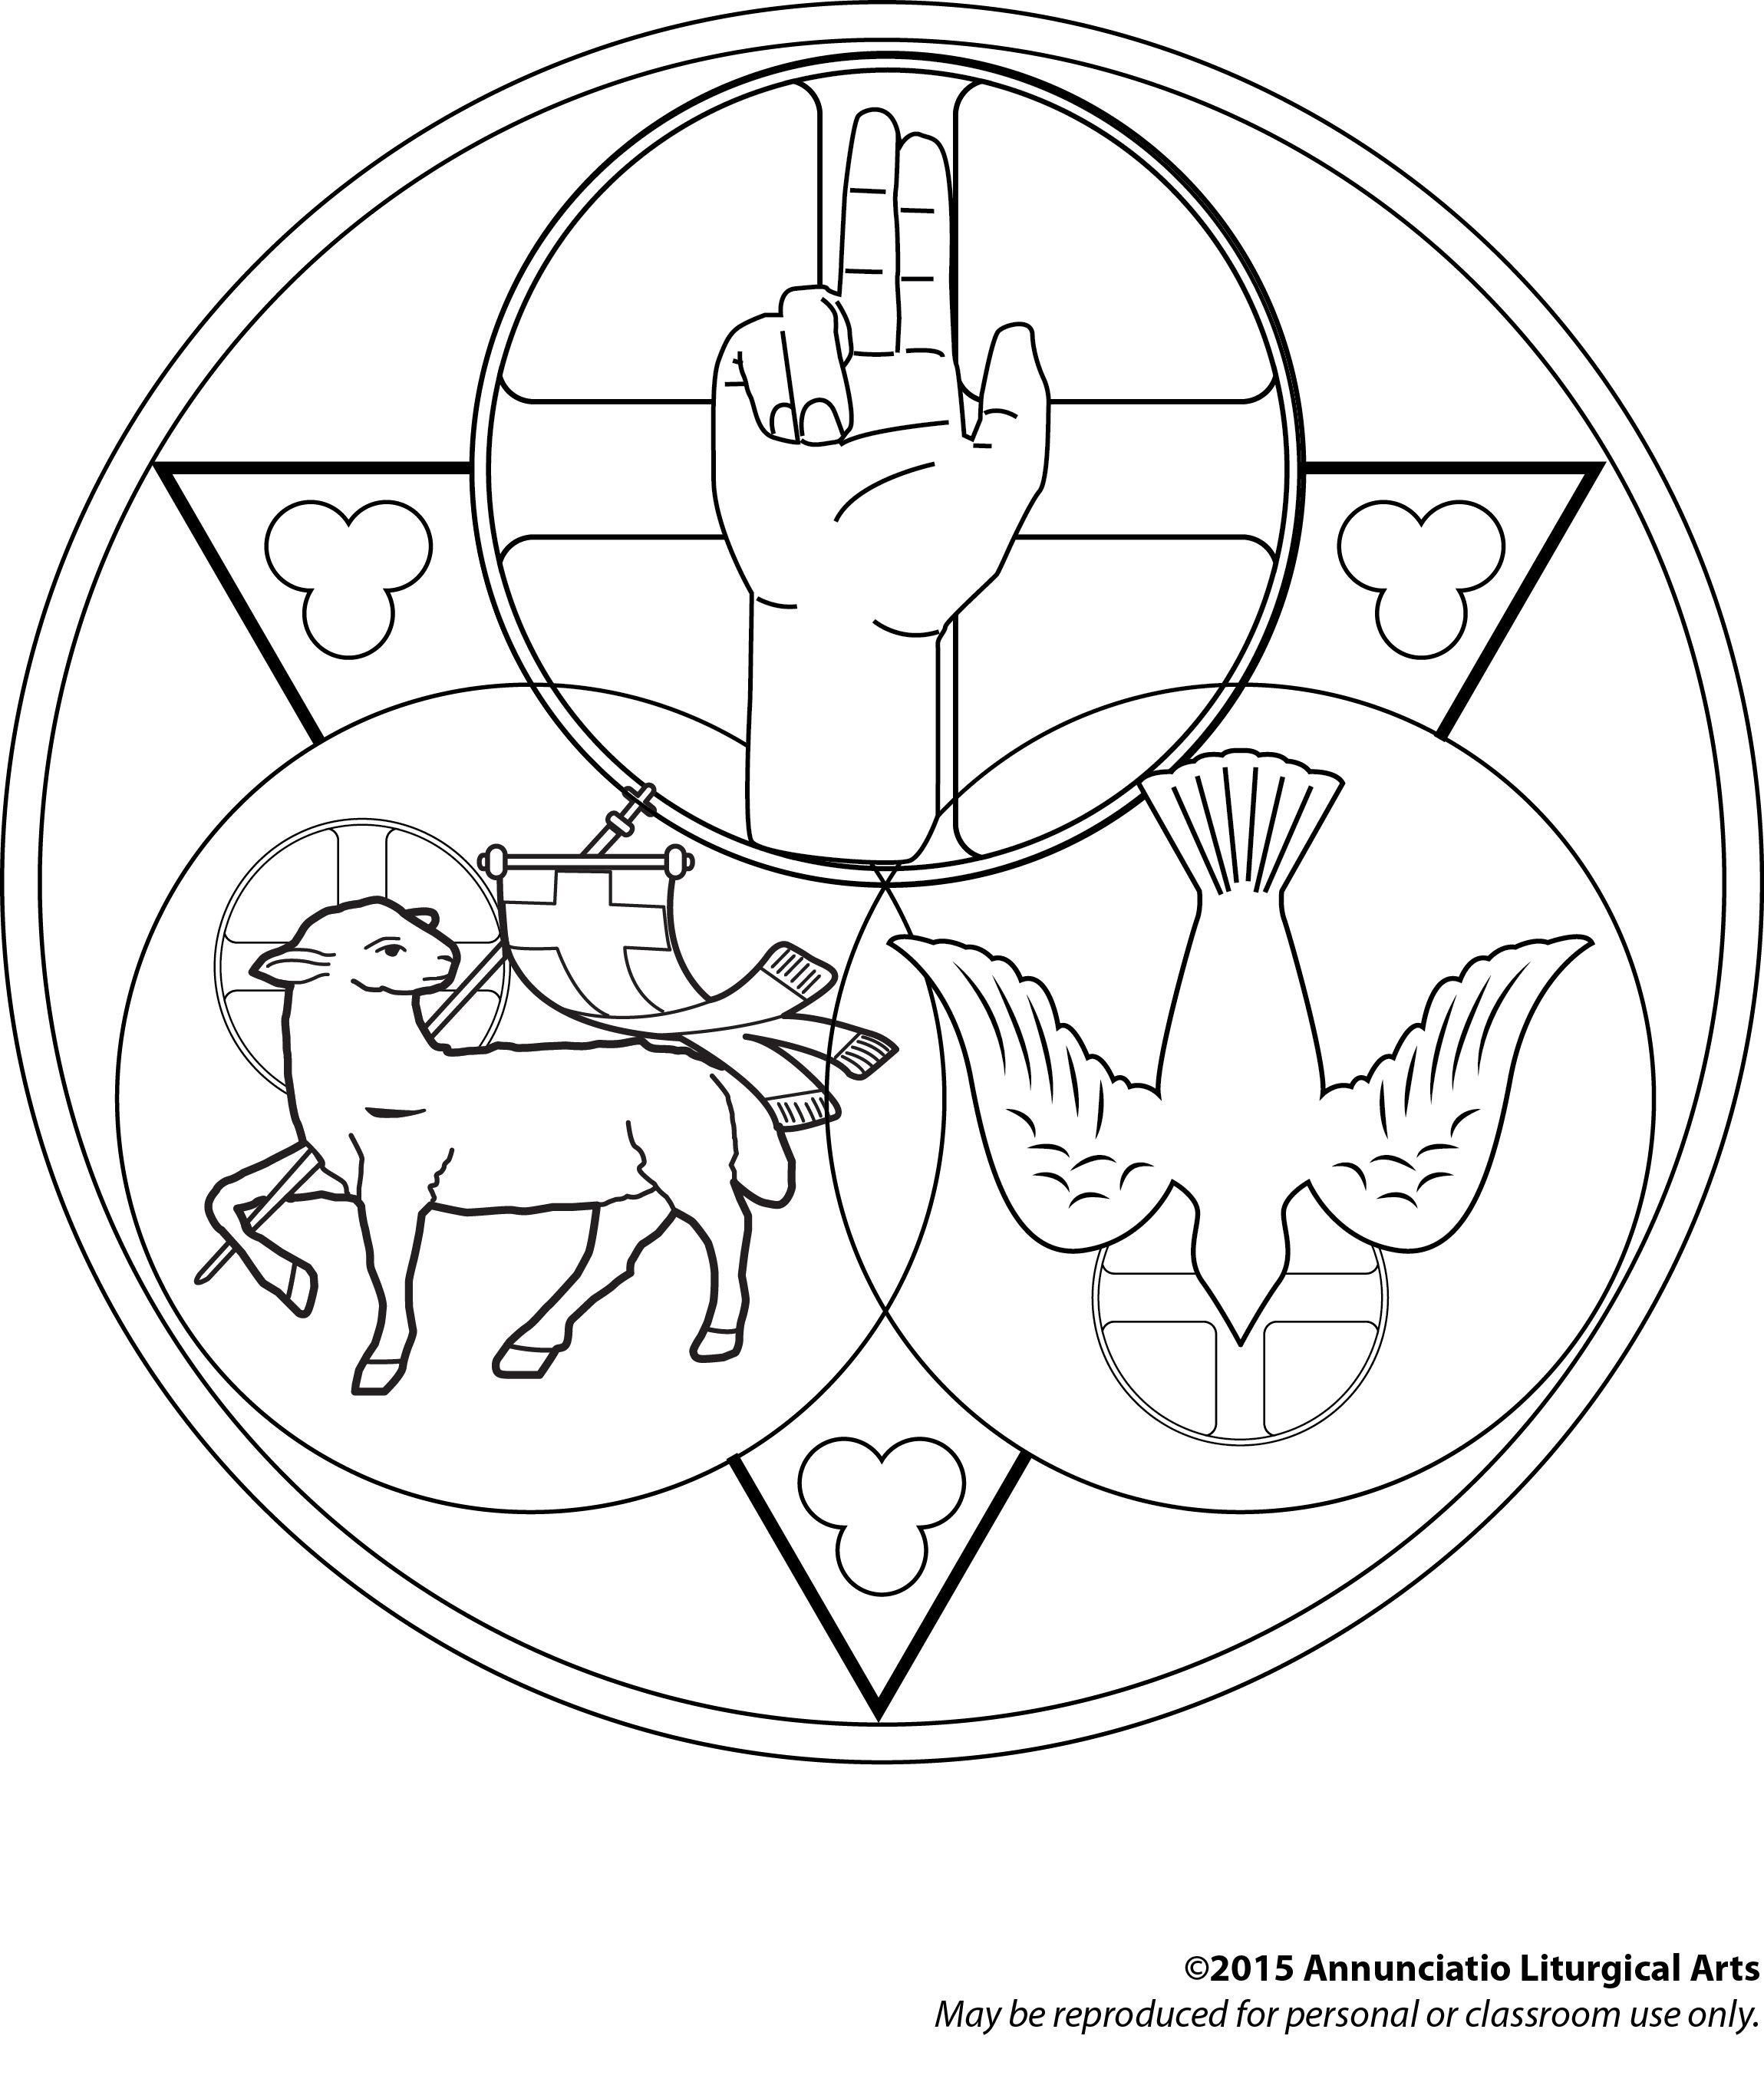 holy trinity coloring pages free holy trinity coloring page thecatholickidcom pages coloring trinity holy free